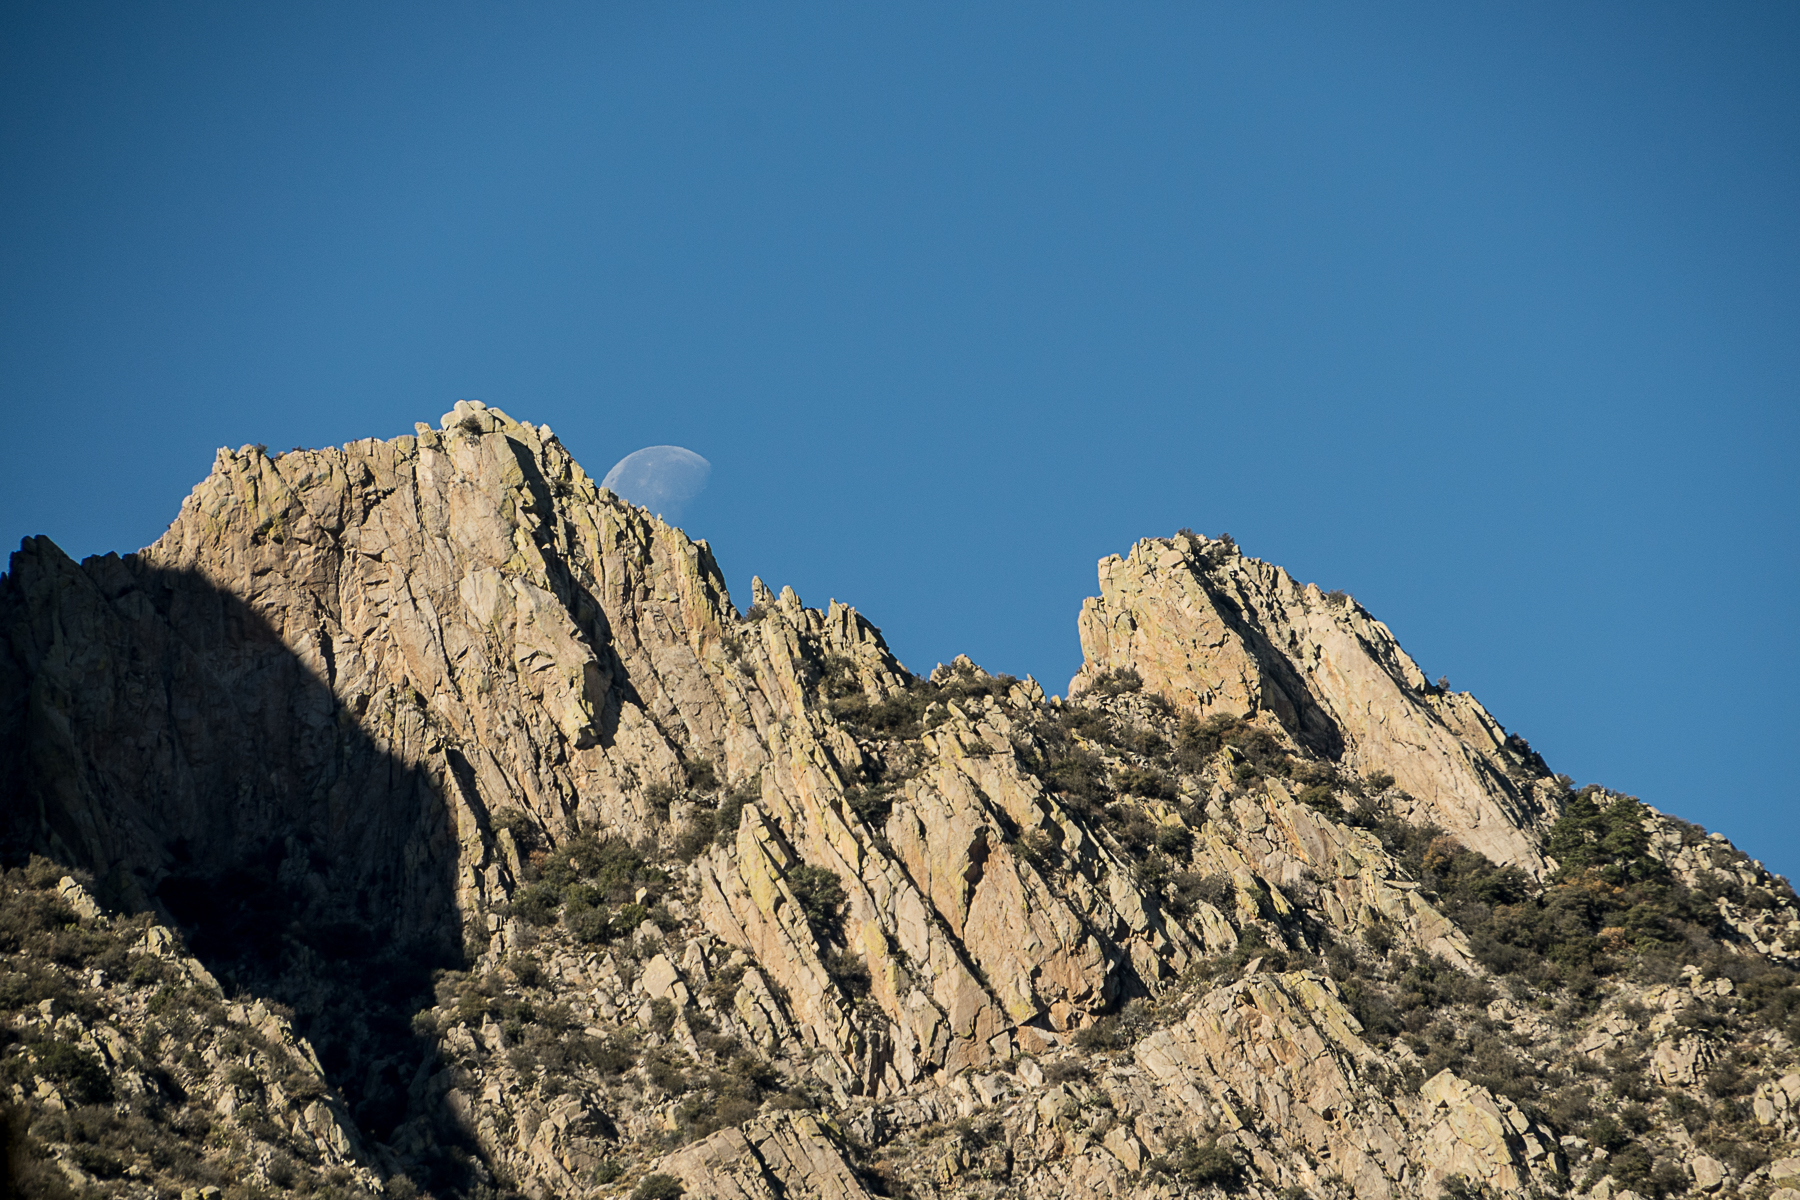 Organ Mountains, Desert Peaks, BLM, New Mexico, desert, agave, yucca, National Monument